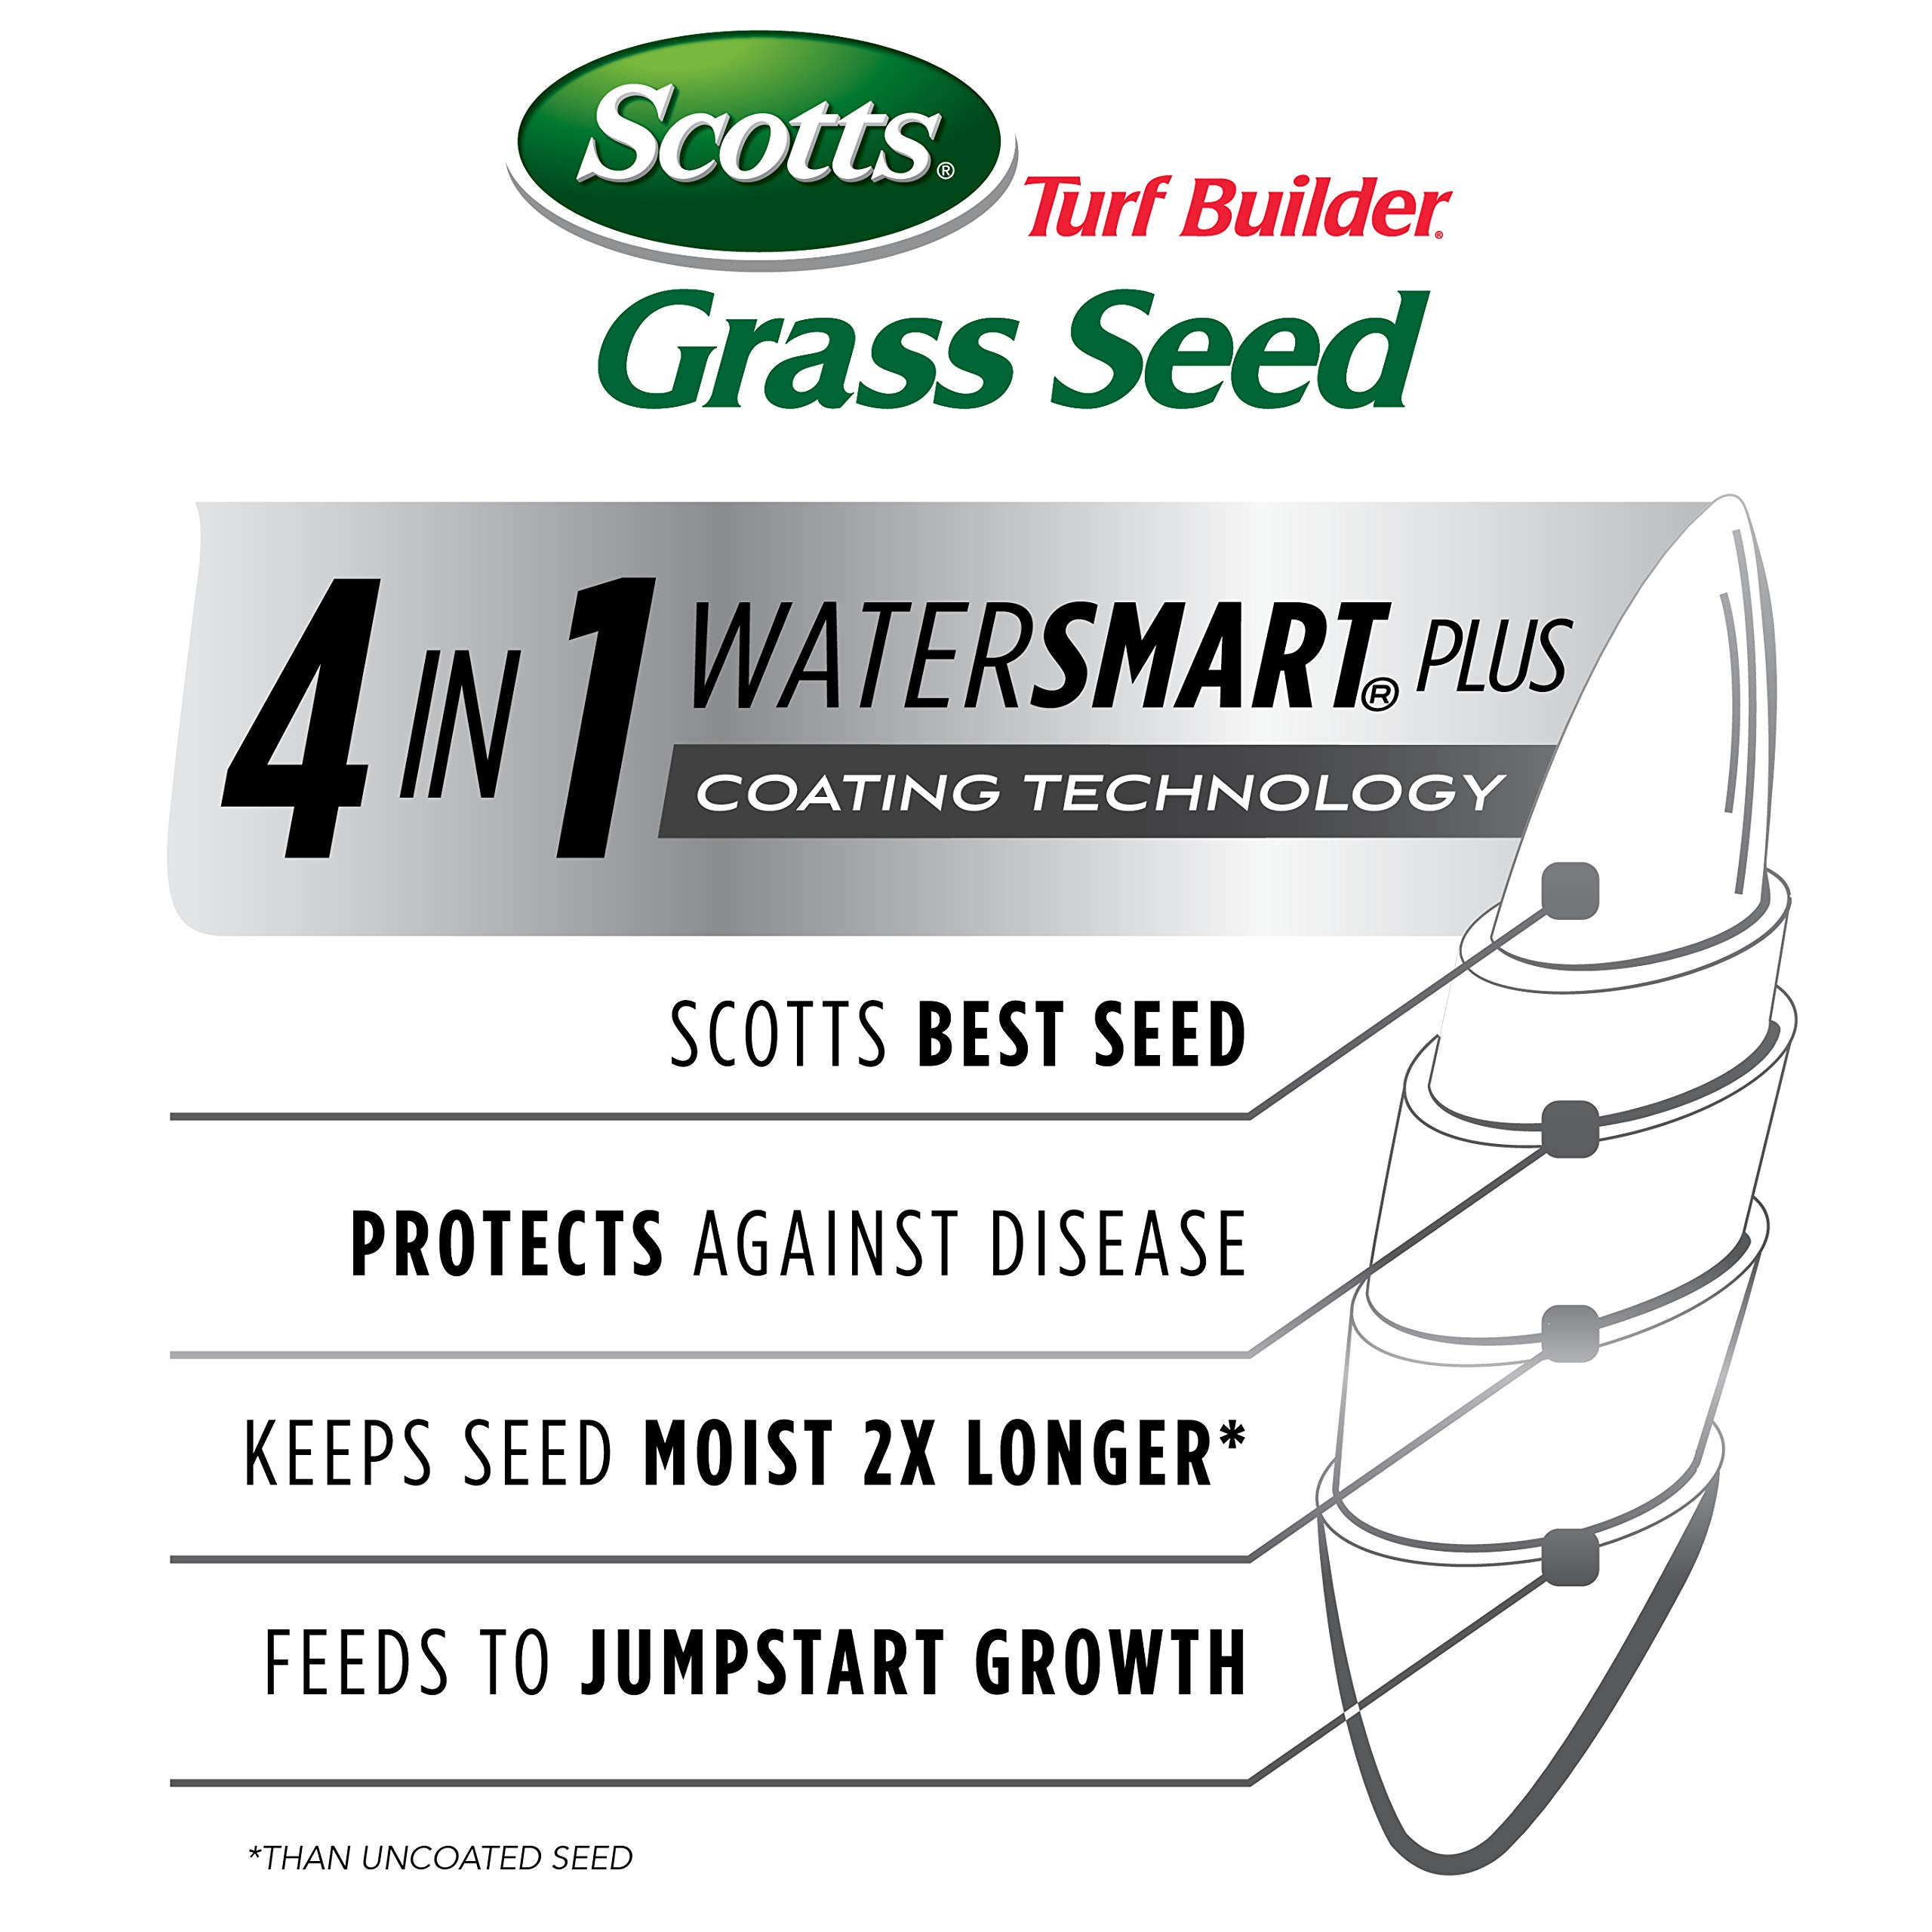 Scotts Turf Builder Grass Seed - Southern Gold Mix for Tall Fescue Lawns, 20-Pound (Sold in select Southern states) by Scotts (Image #3)